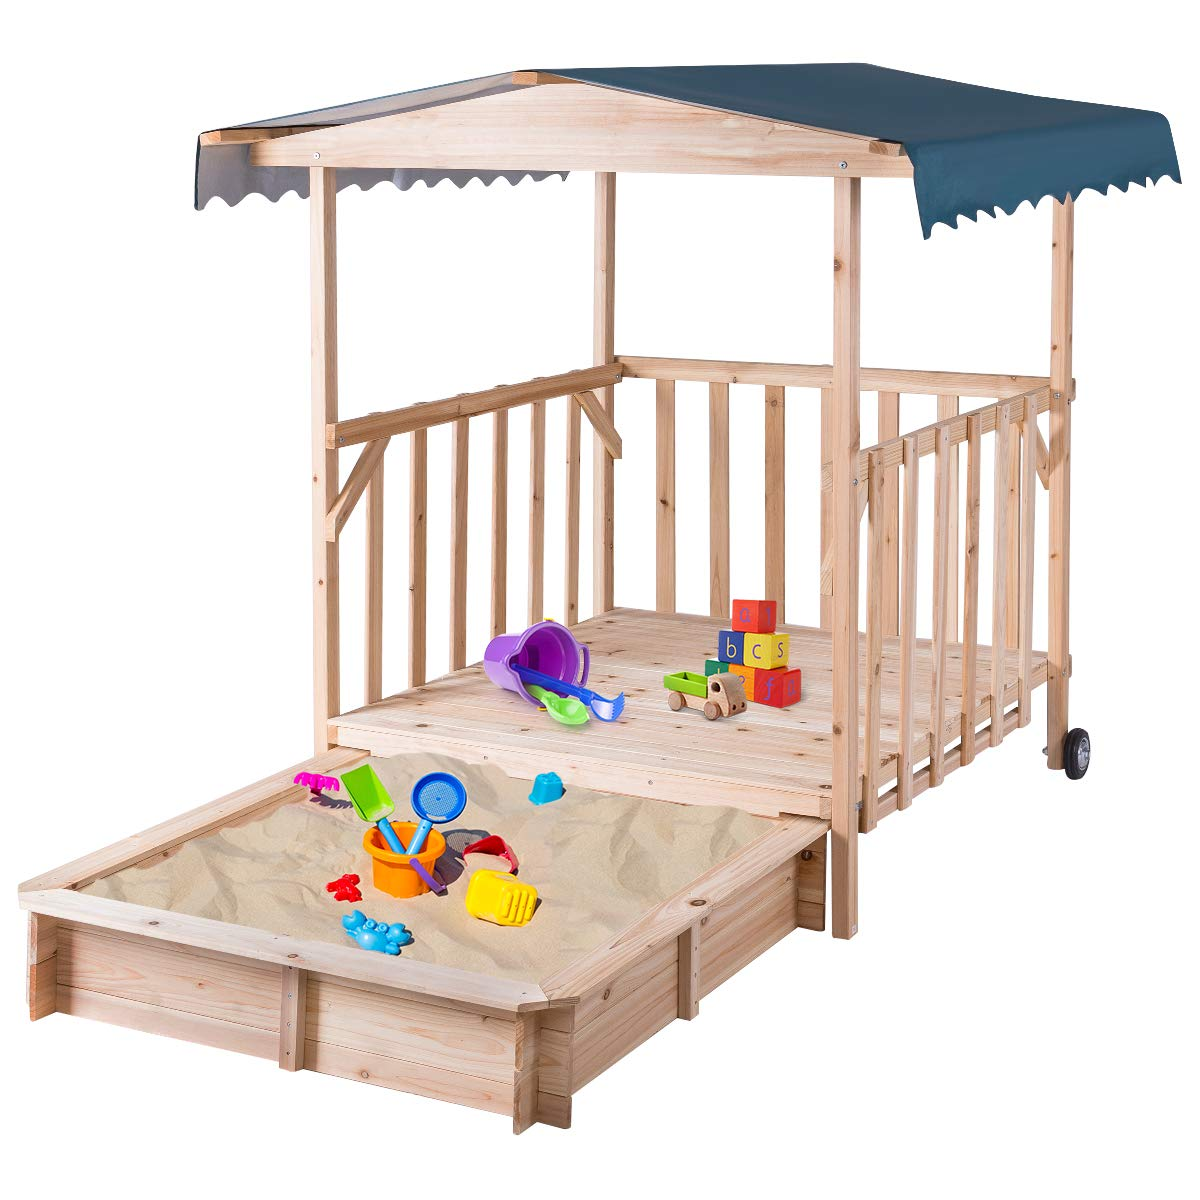 Costzon Kids Retractable Playhouse w/ Sandbox Canopy, Non-Woven Fabric Cloth, Wood Frame Play Area, Two Wheels, Children Outdoor Beach Cabana Sandbox for Outdoor, Lawn, Courtyard (52-Inch, Aquamarine)